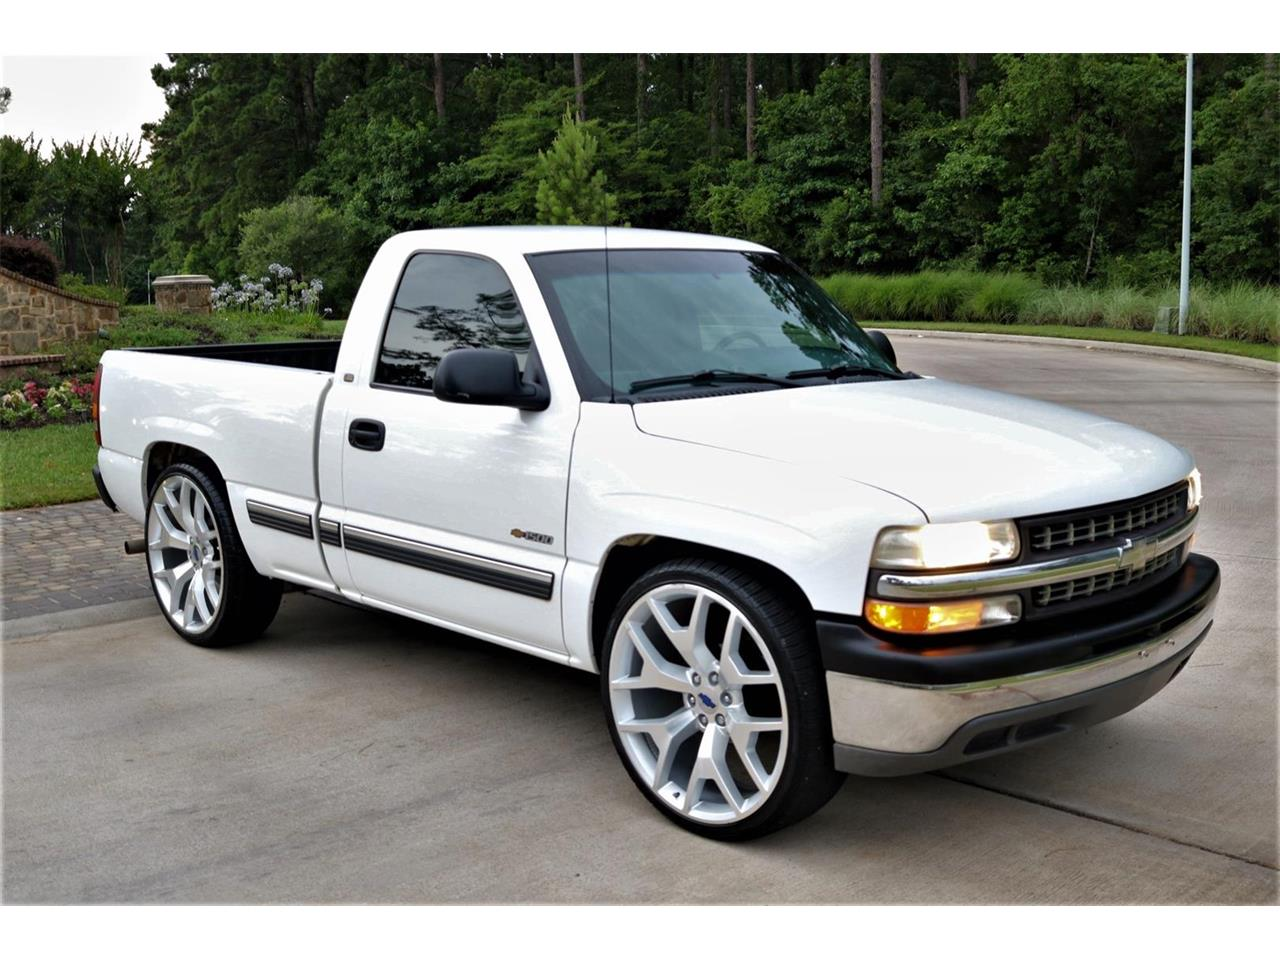 Large Picture of '00 Silverado - $9,900.00 Offered by Texas Trucks and Classics - PS94